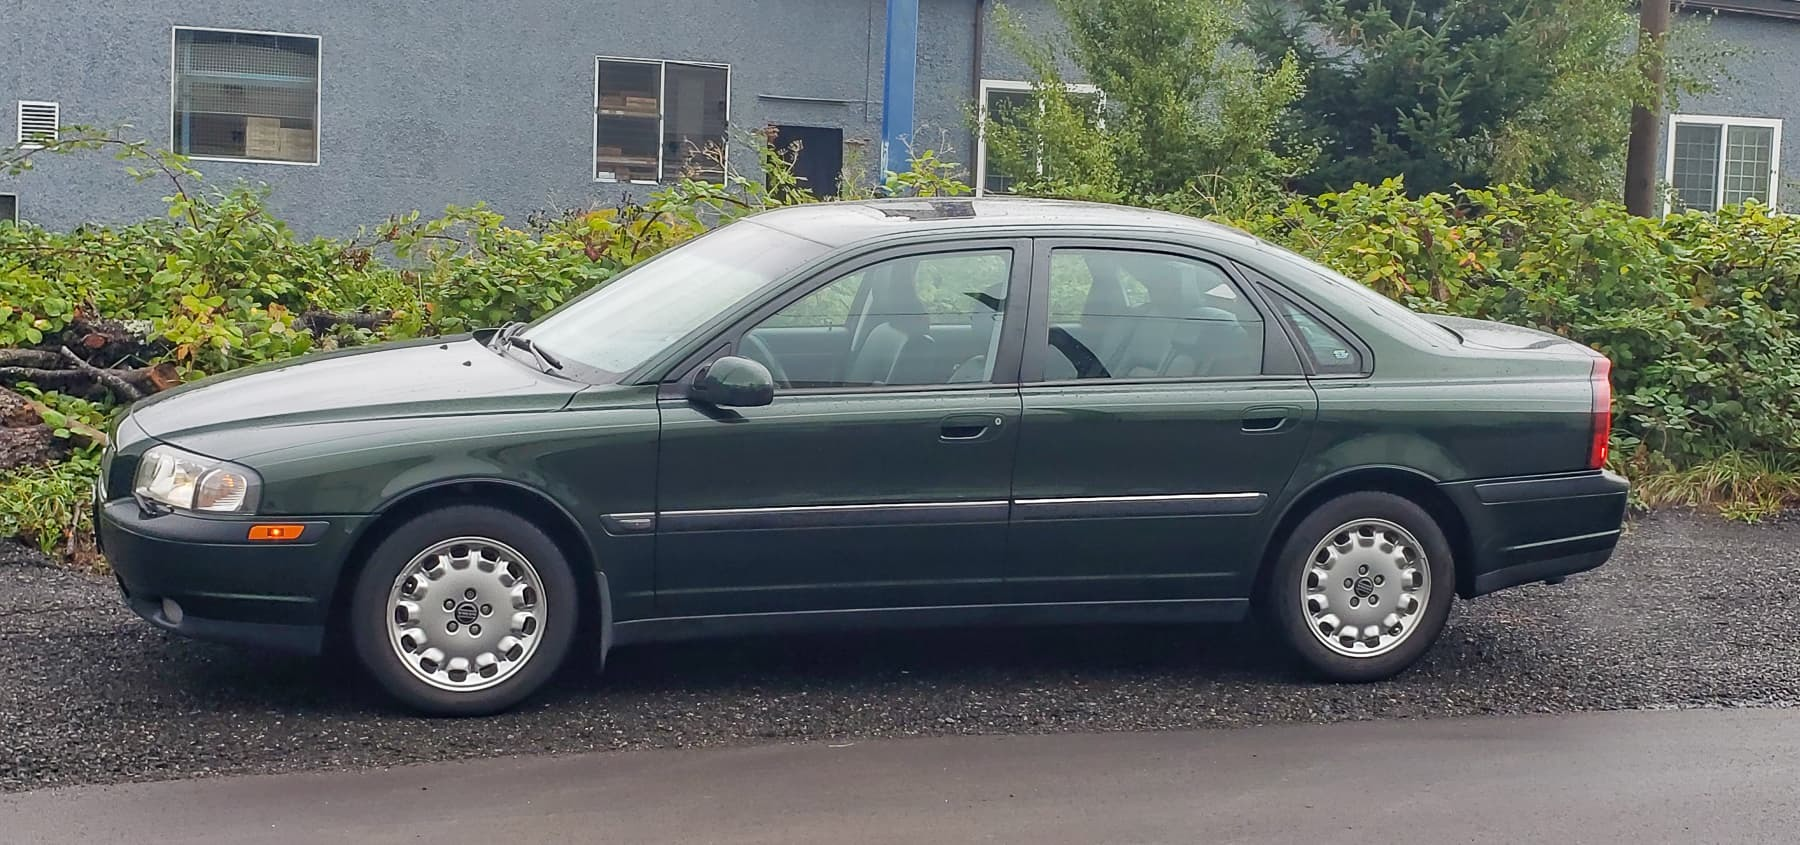 2000 Volvo S80, Electronic Throttle Replacement